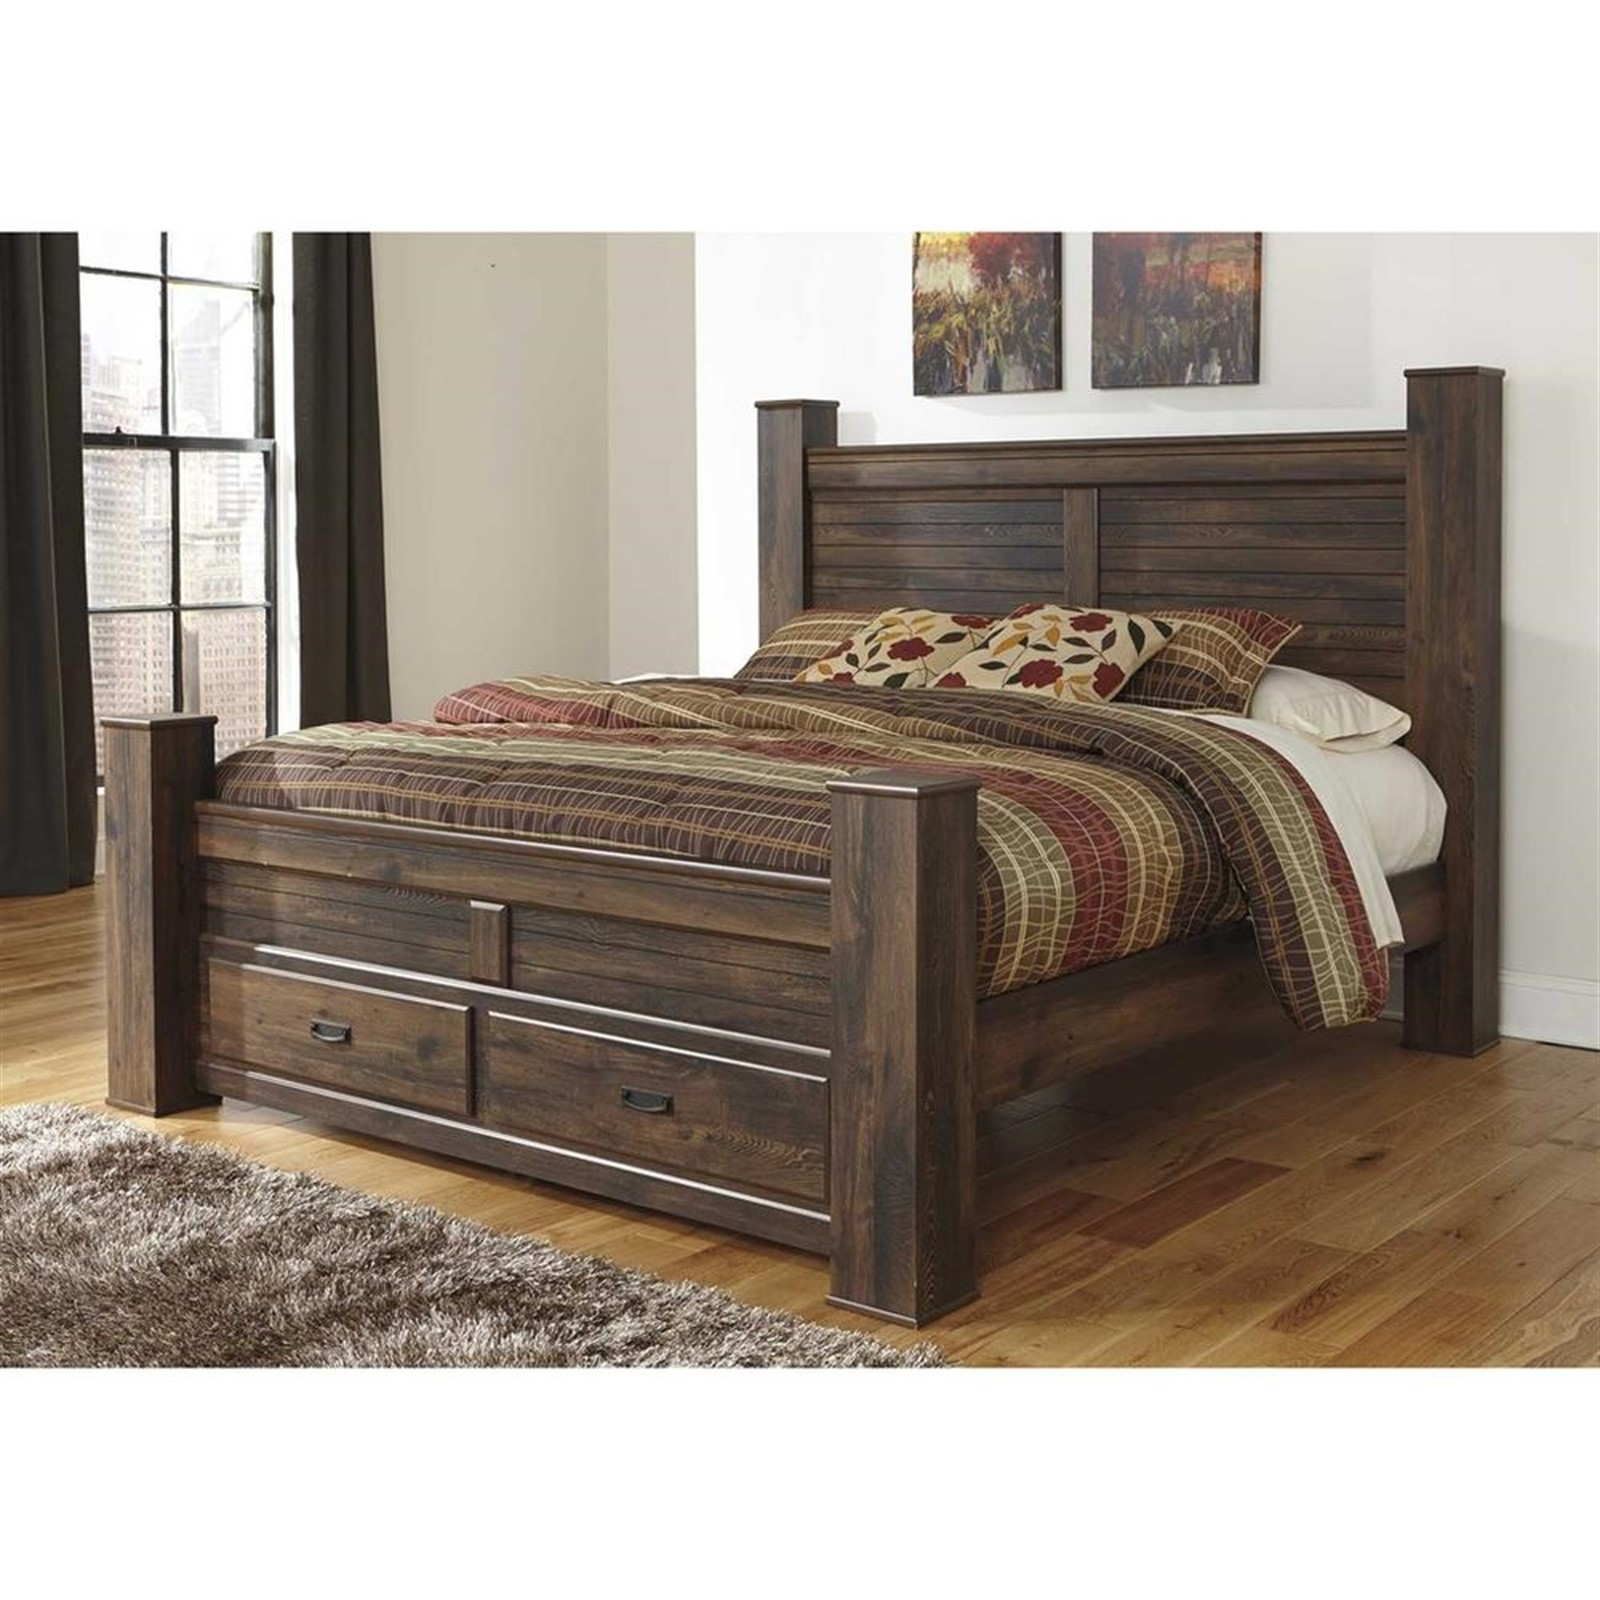 Quinden Dark Brown King Bed with Posts with Footboard Storage